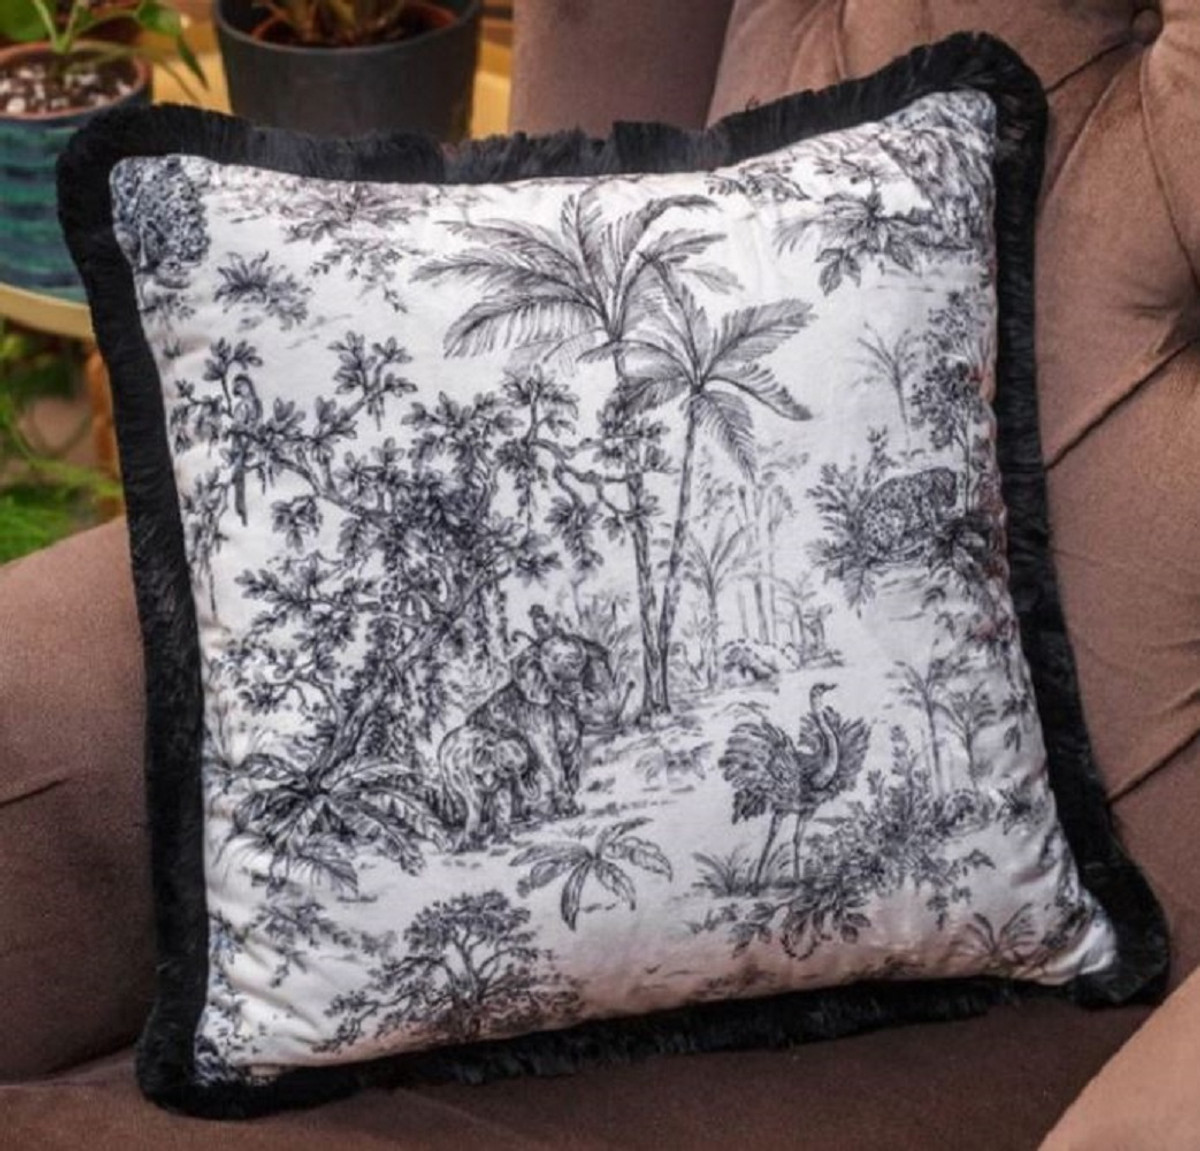 Casa Padrino Luxury Decorative Pillow Jungle White Black 45 X 45 Cm Printed Velvet Pillow With Fringes Luxury Quality